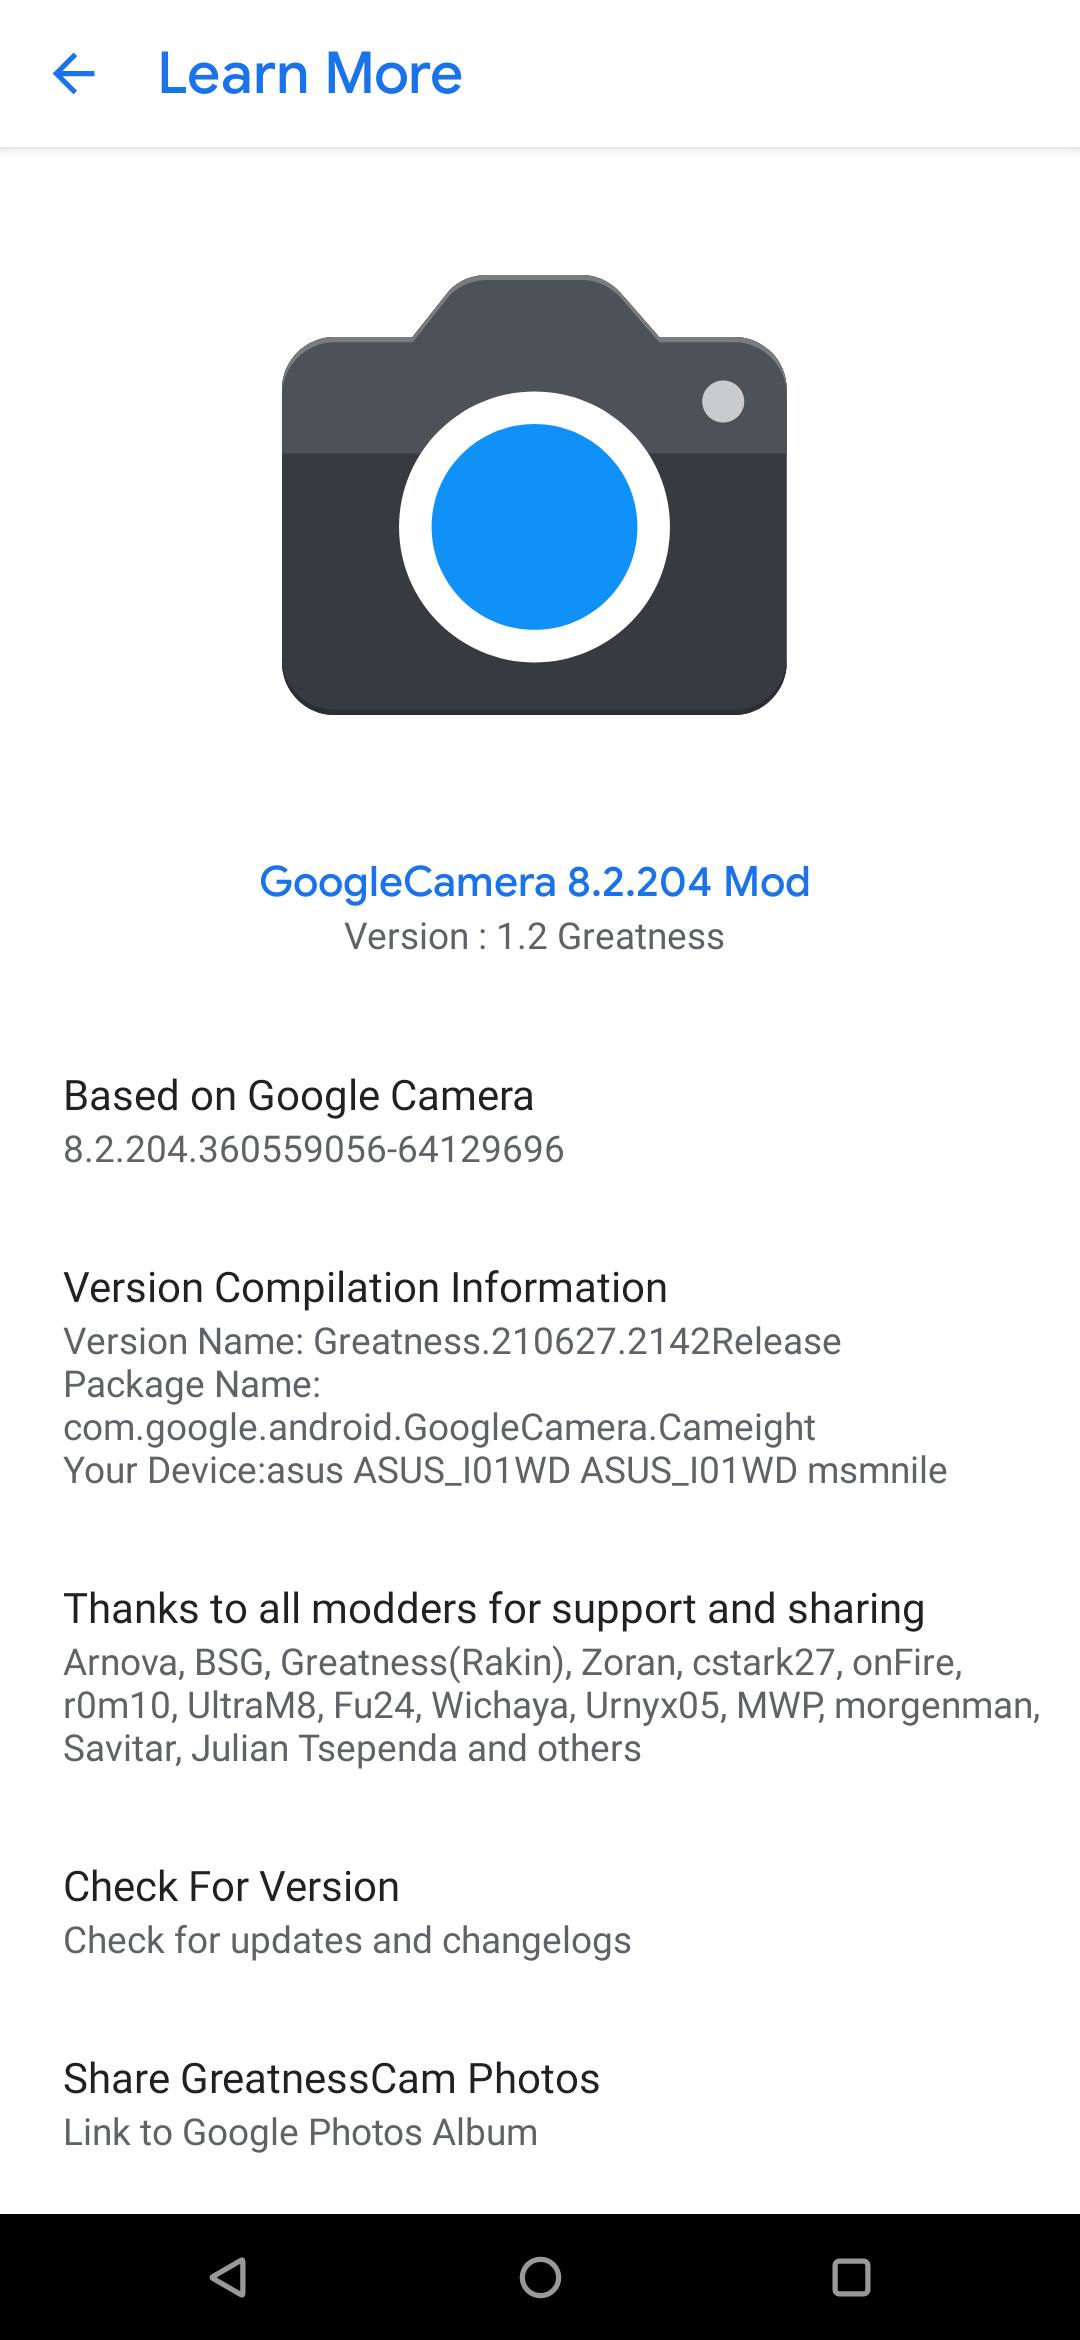 GCam8.2.204_Greatness.210627.2142Release